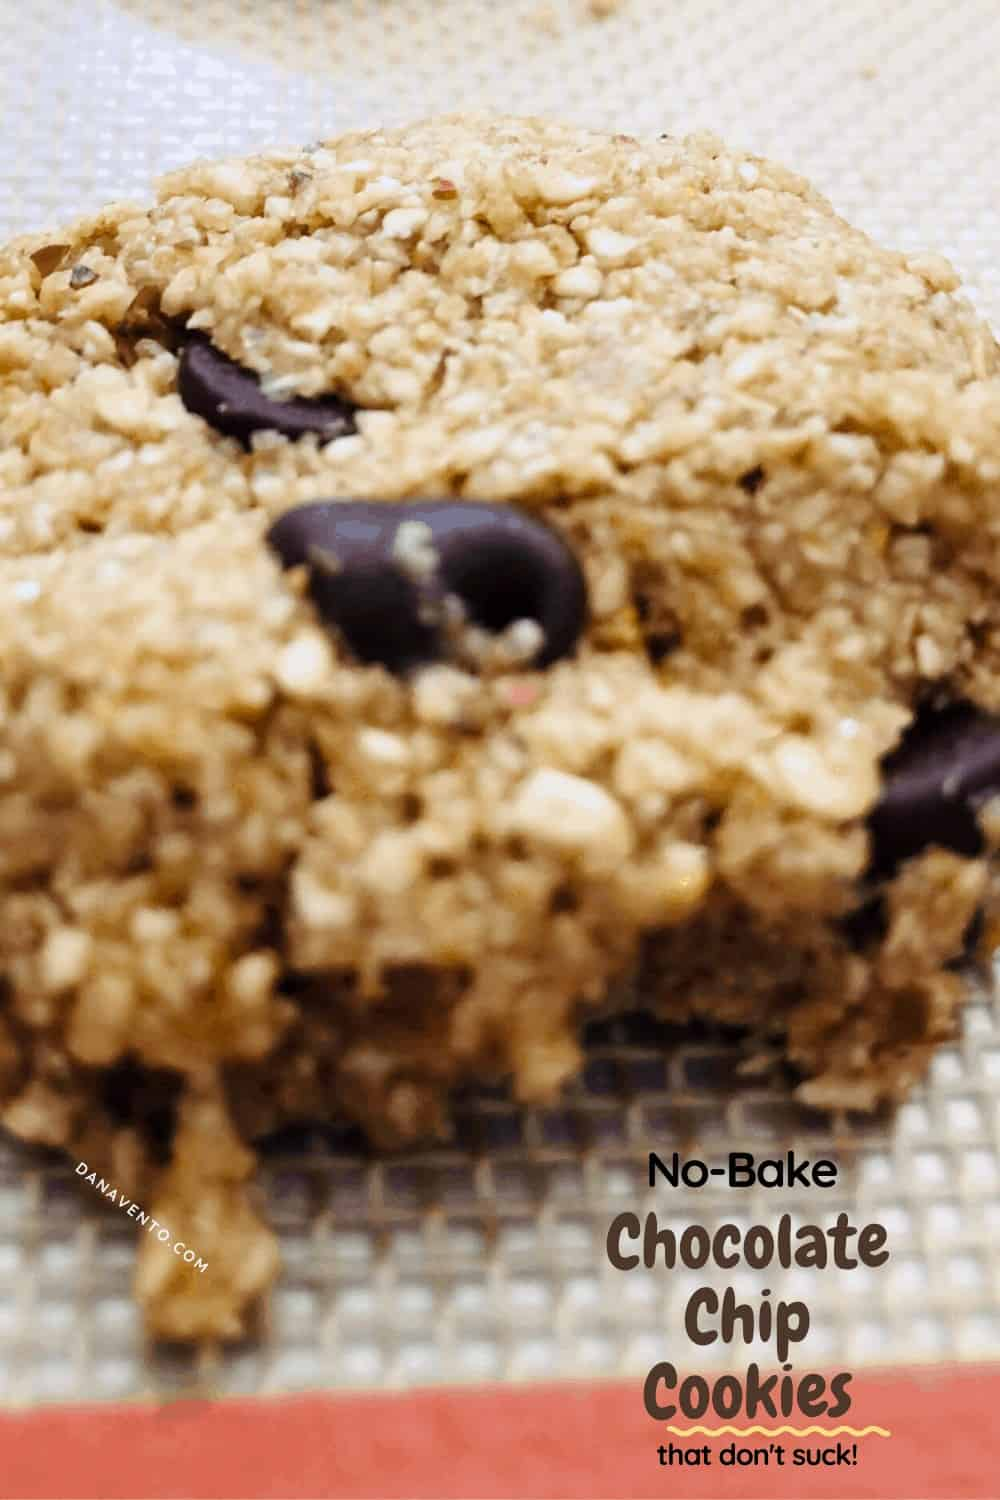 upclose chip for formation of no-bake cookie